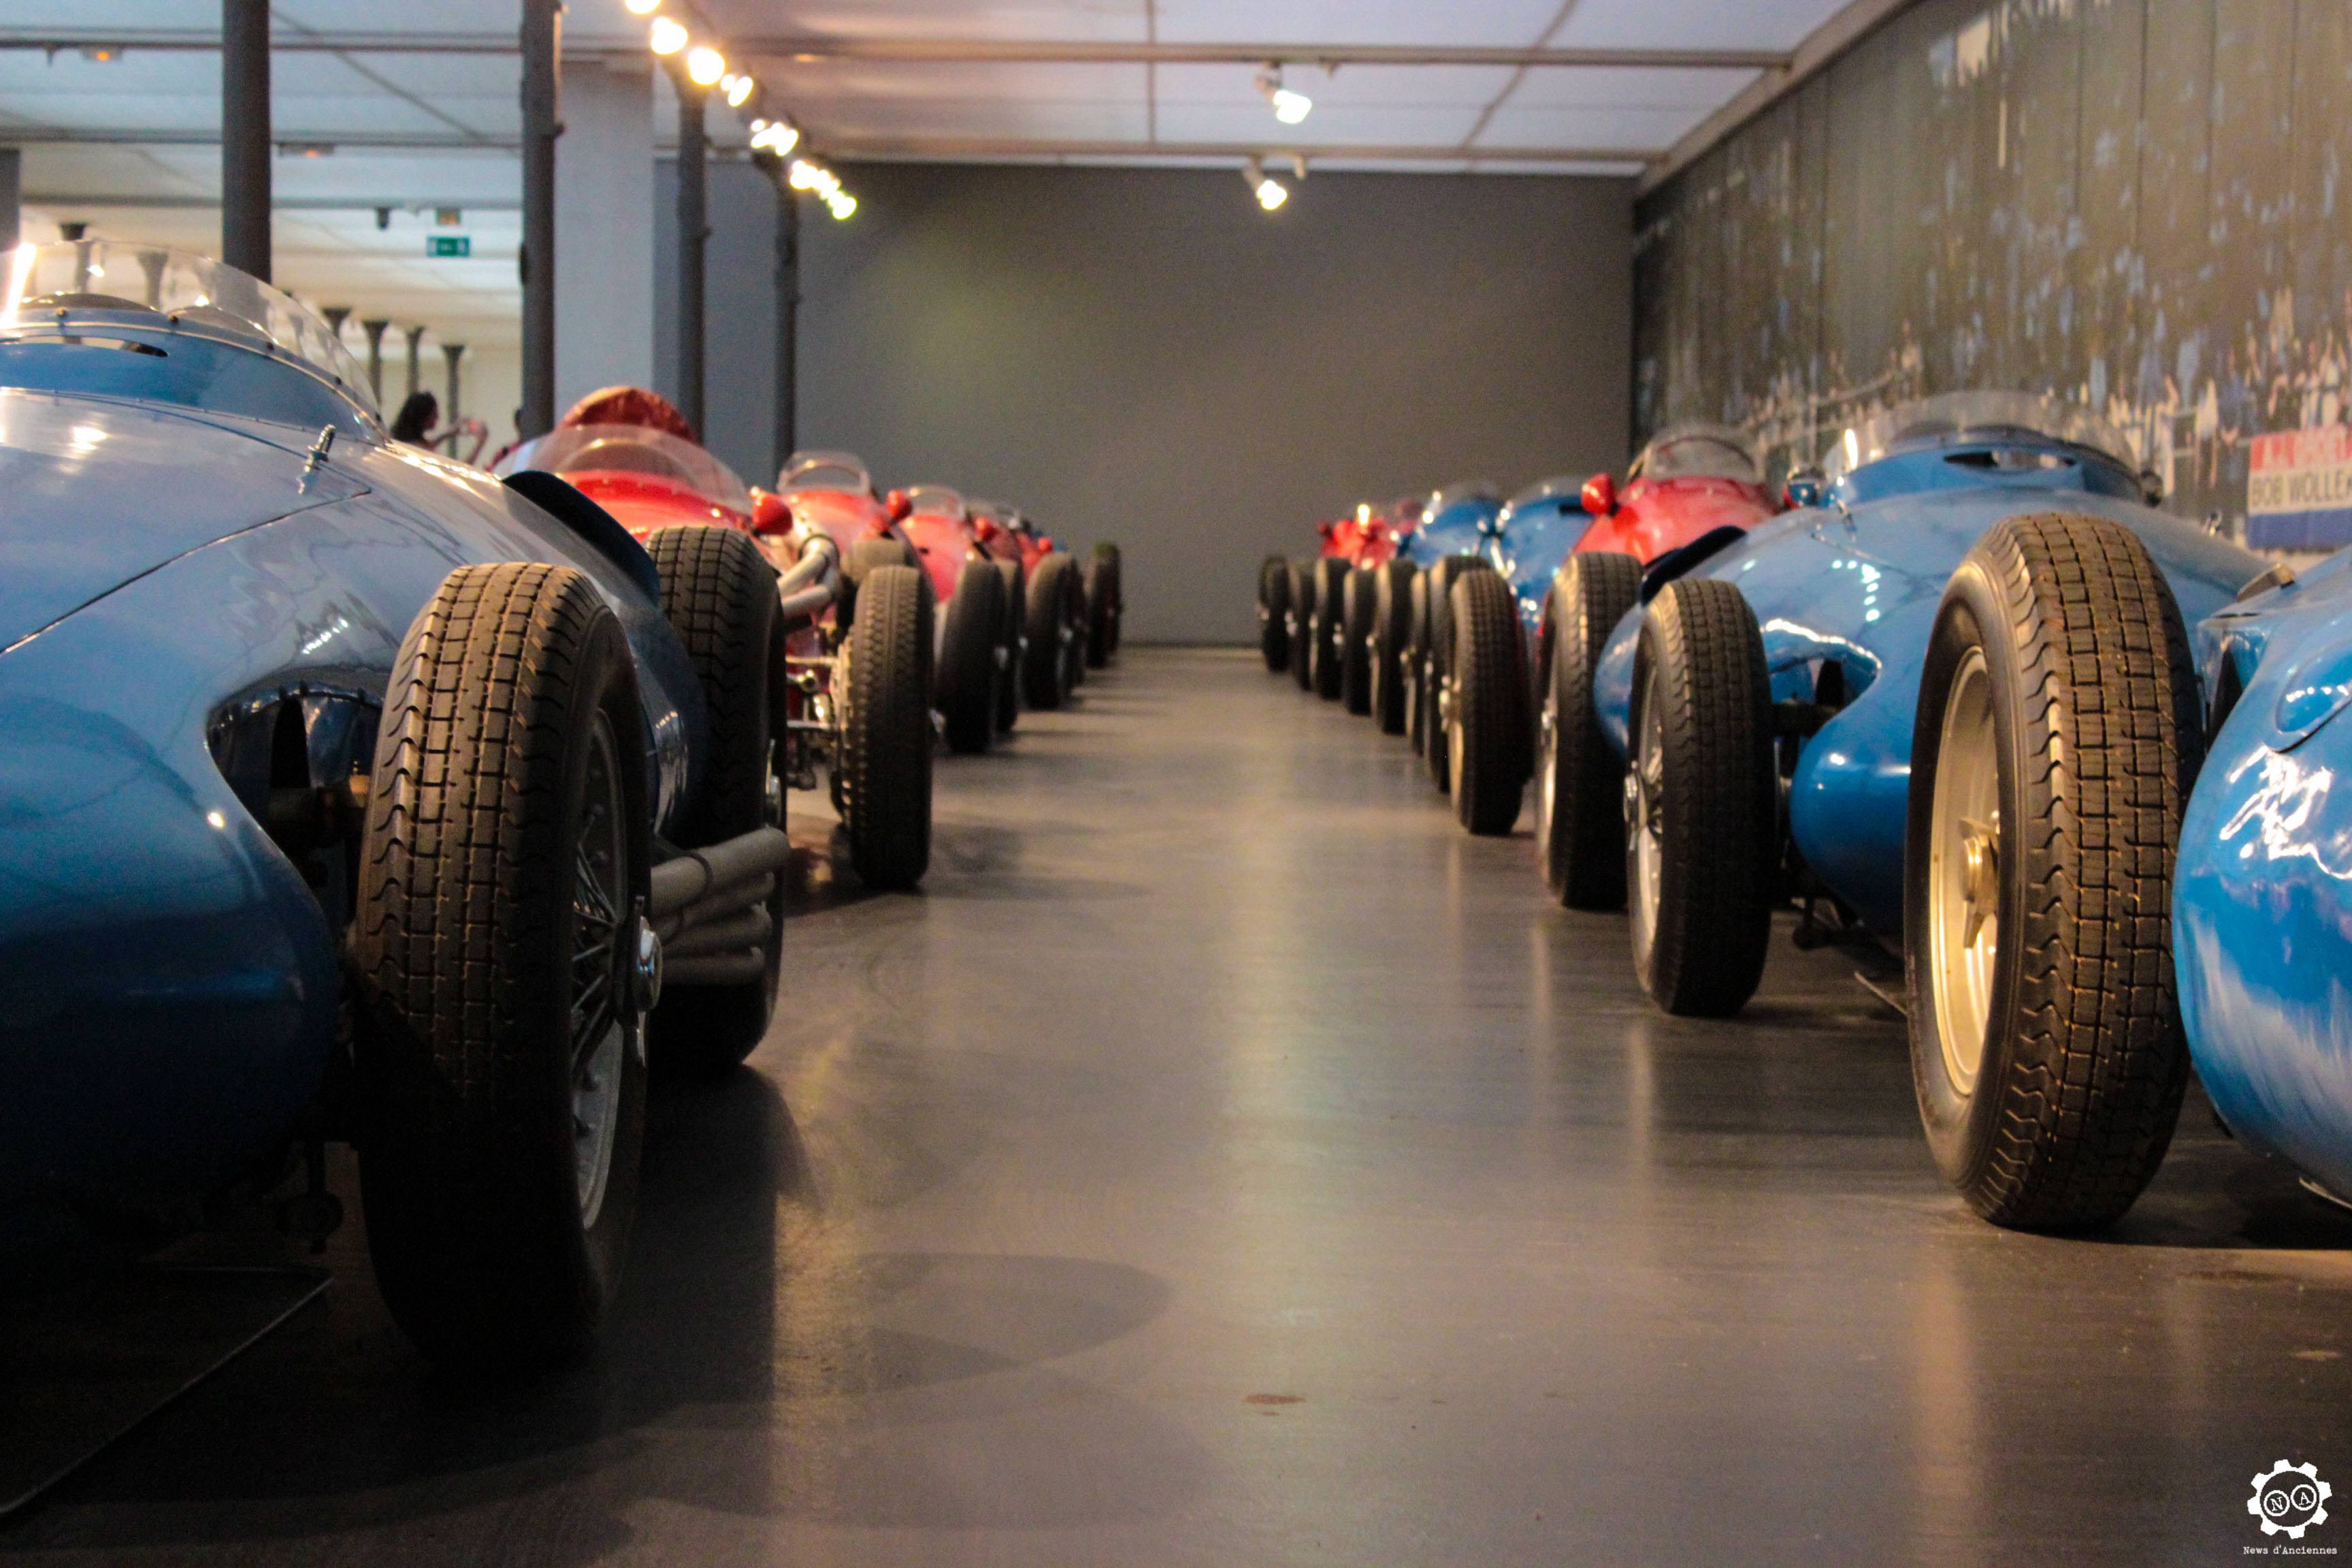 We tried for you : the Cité de l'Automobile